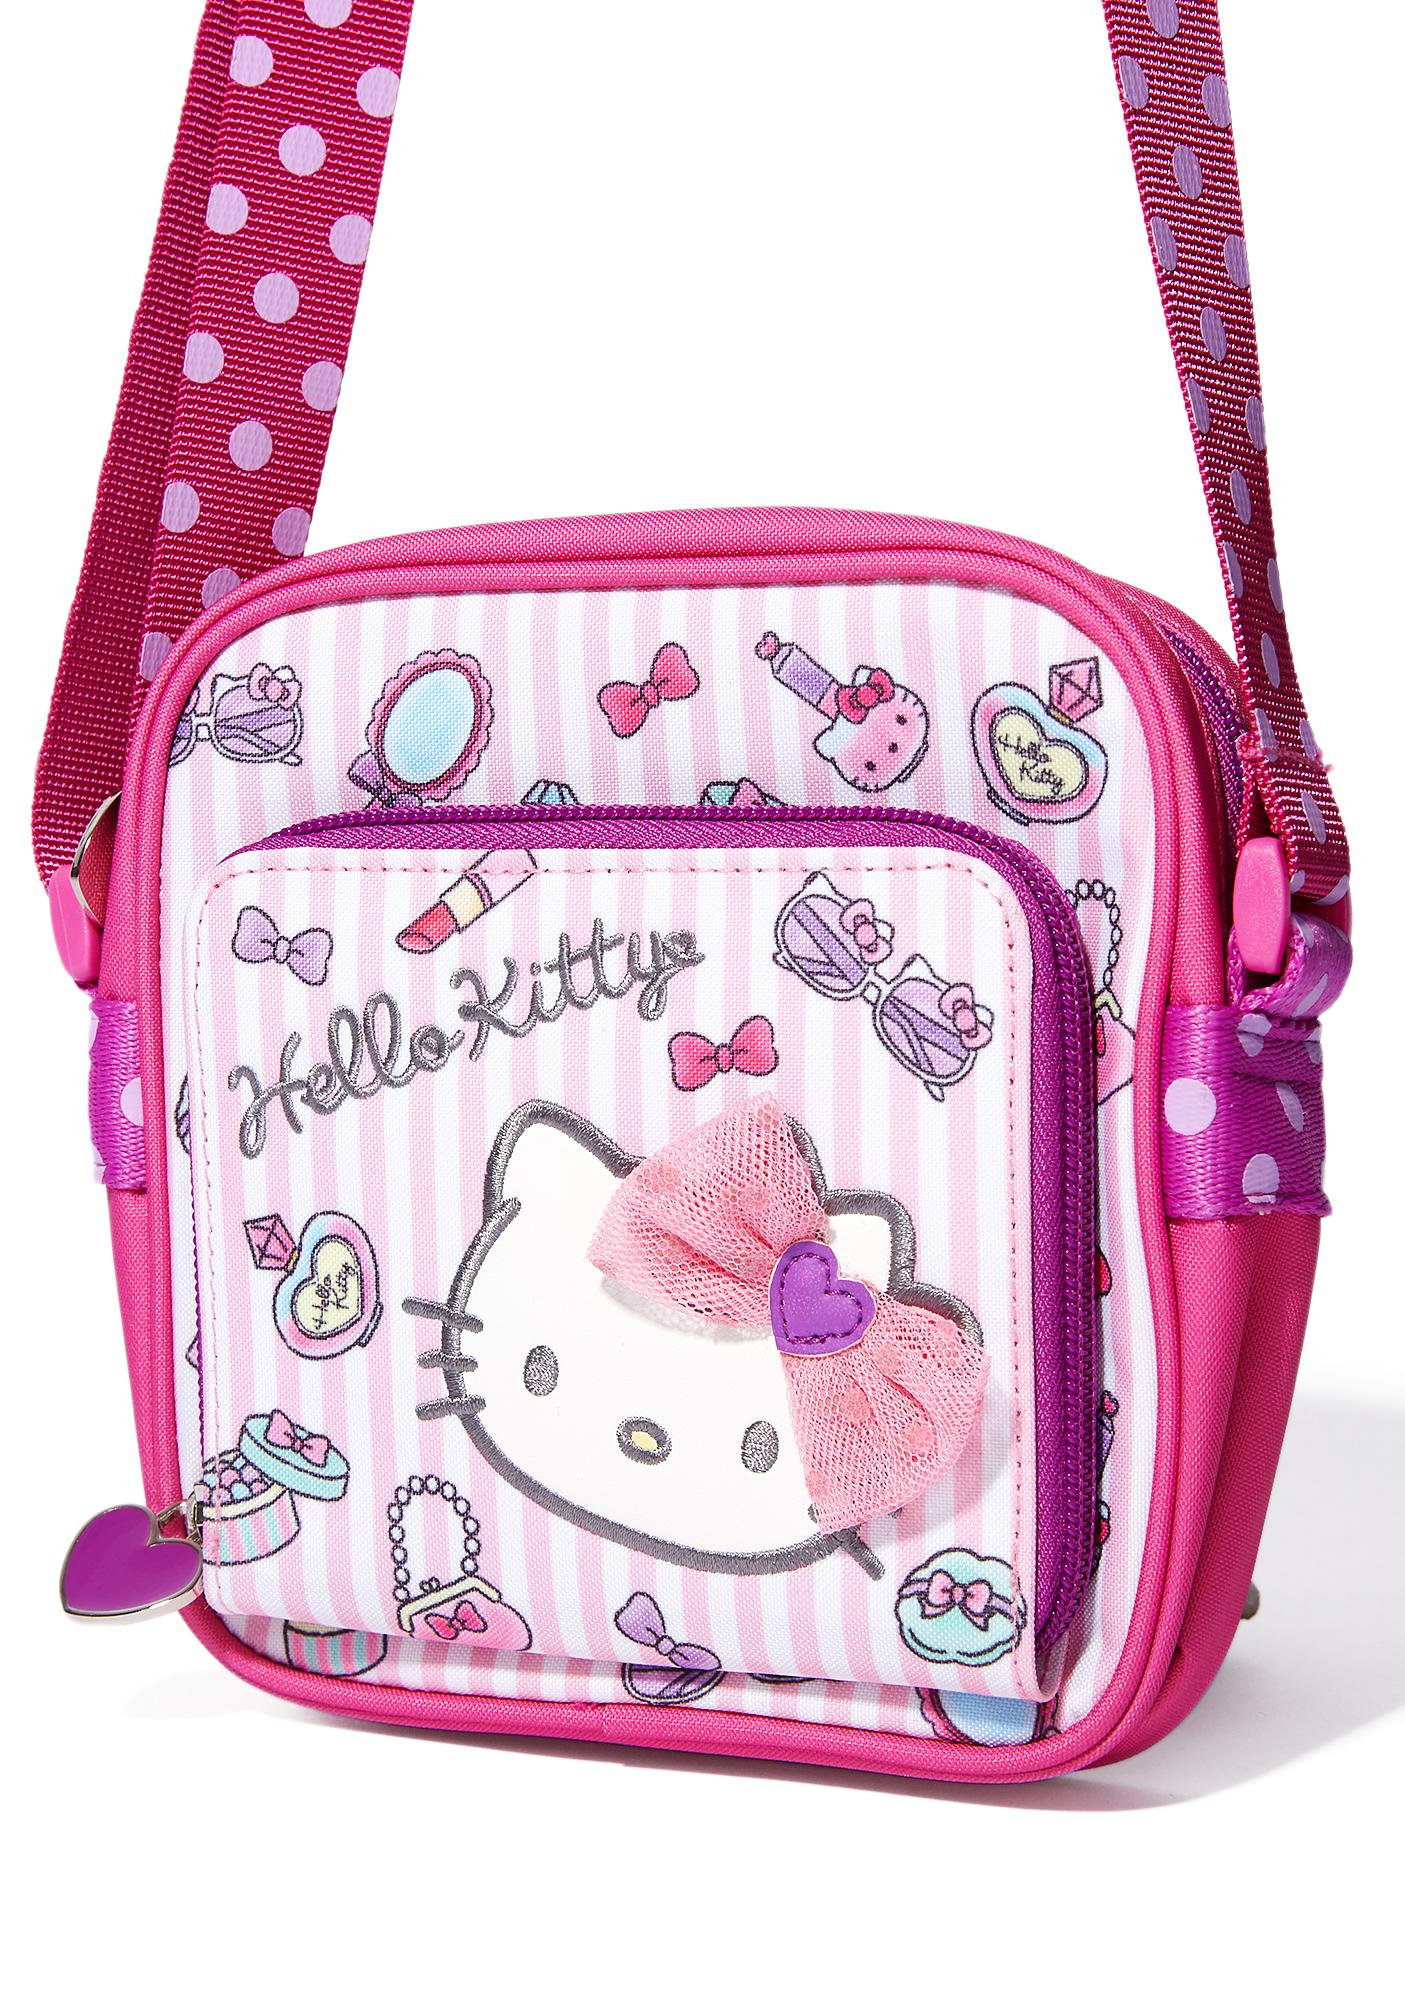 Sanrio Royalty Pouch